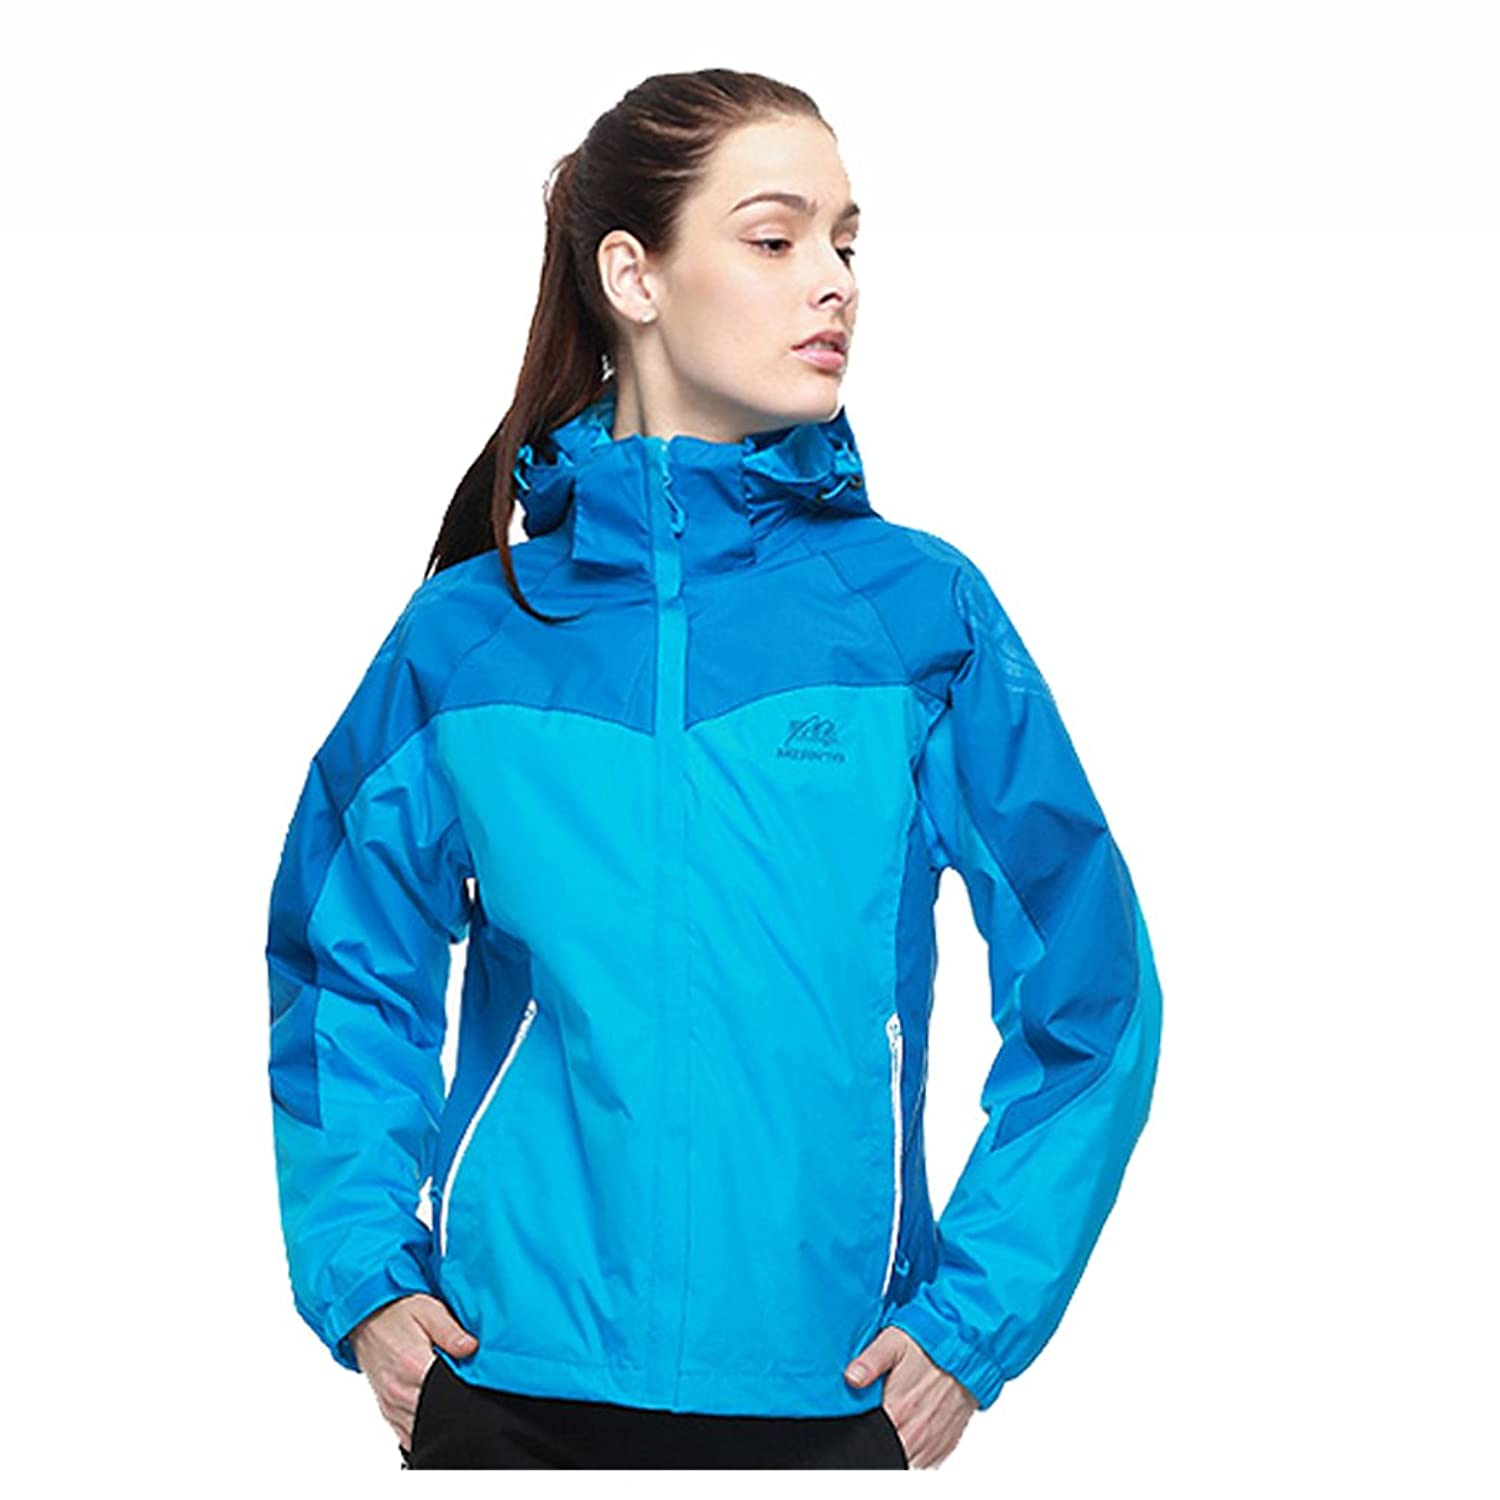 MERRTO Women's Outdoor Waterproof Two-piece Thermal Hiking Skiing Jackets